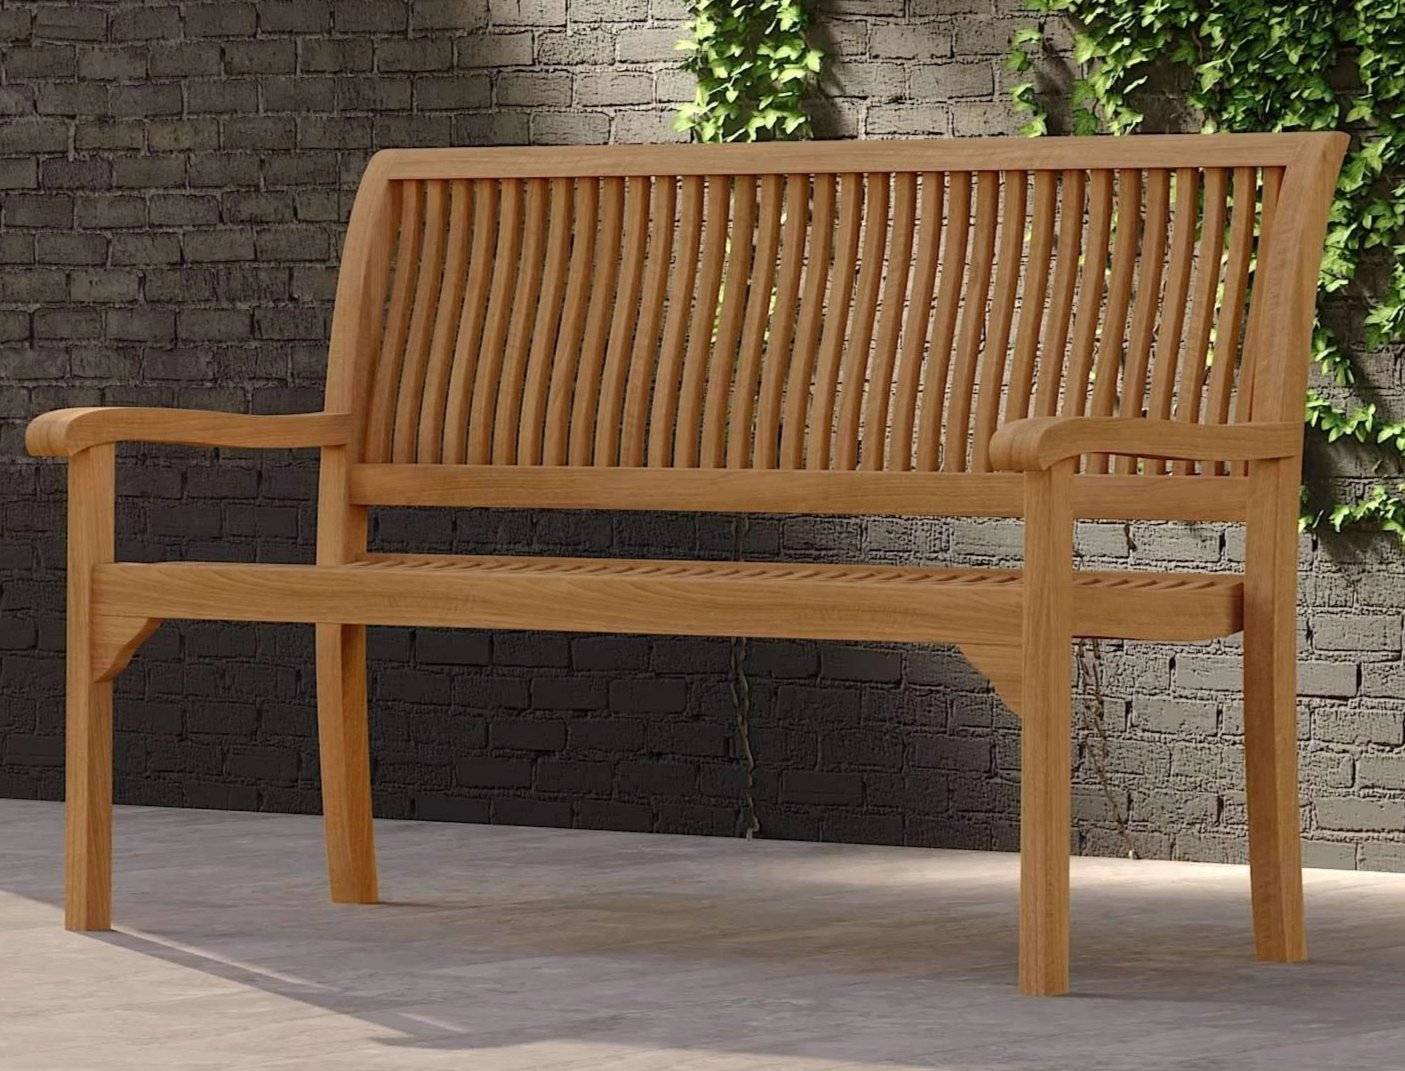 Guildford Teak Bench 130cm (2 Seater)  - Chic Teak® | Luxury Teak Furniture